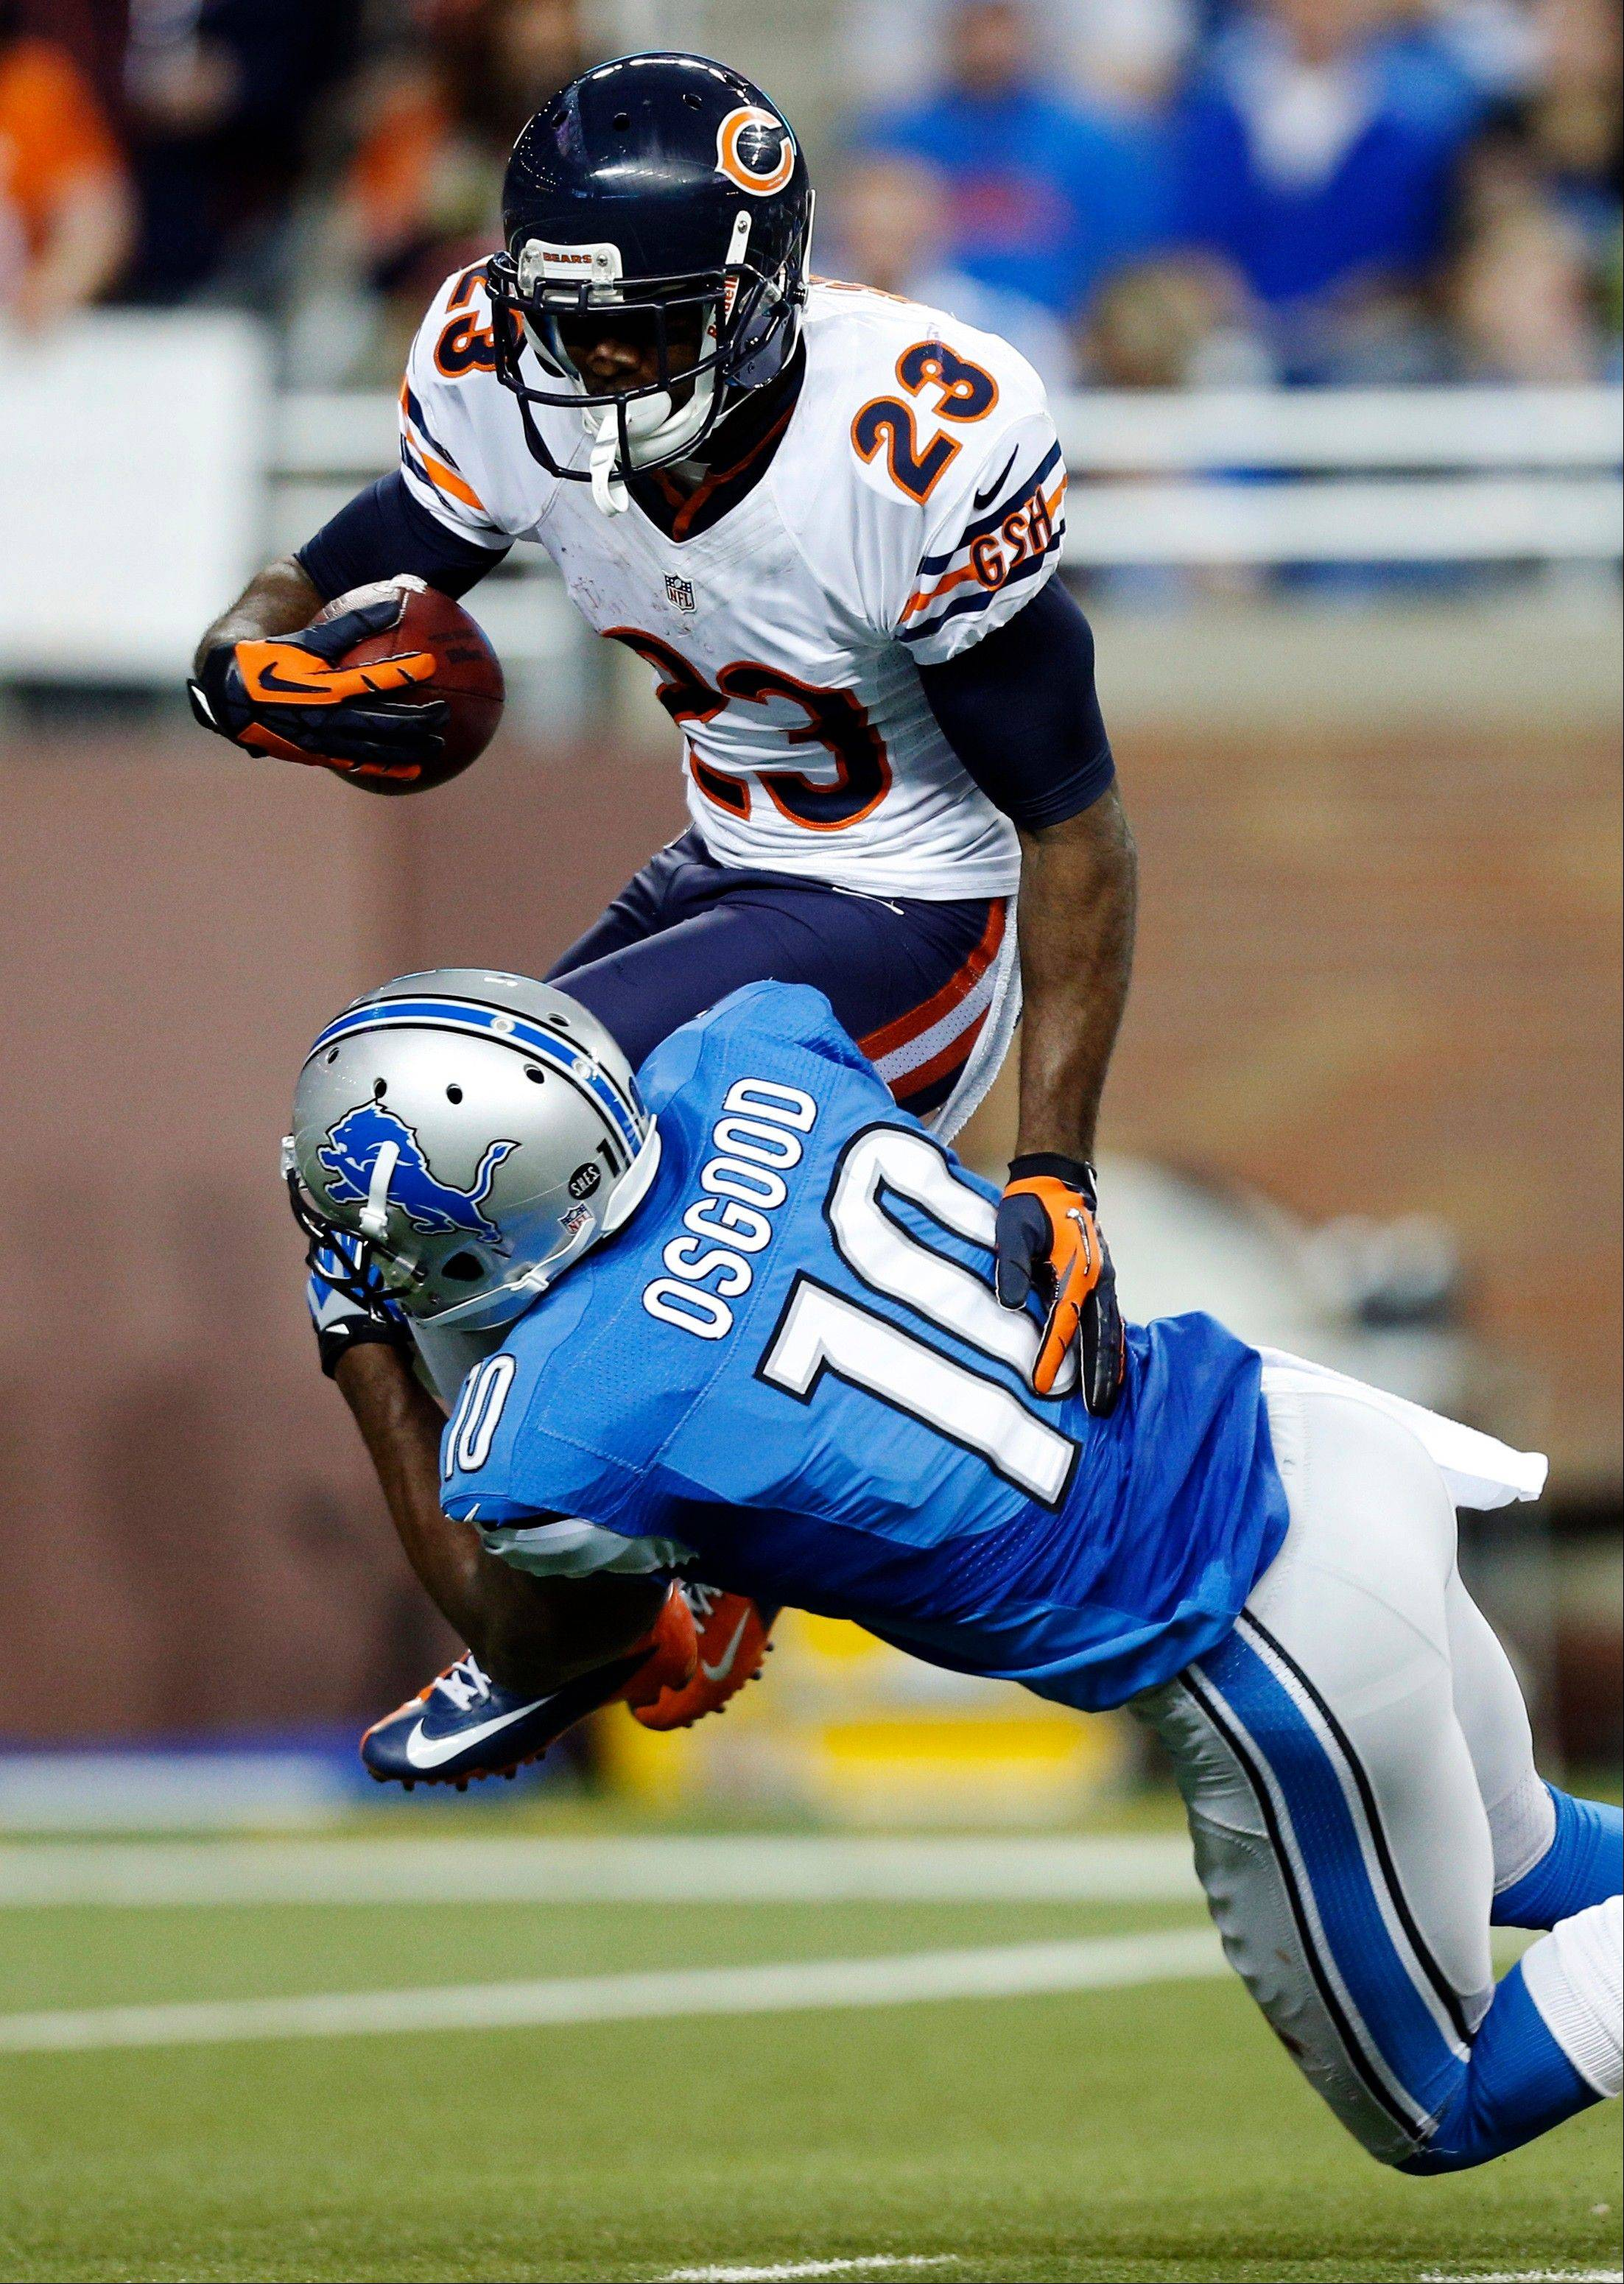 Chicago Bears' Devin Hester (23) is stopped by Detroit Lions' Kassim Osgood (10) during a kick return in the third quarter.